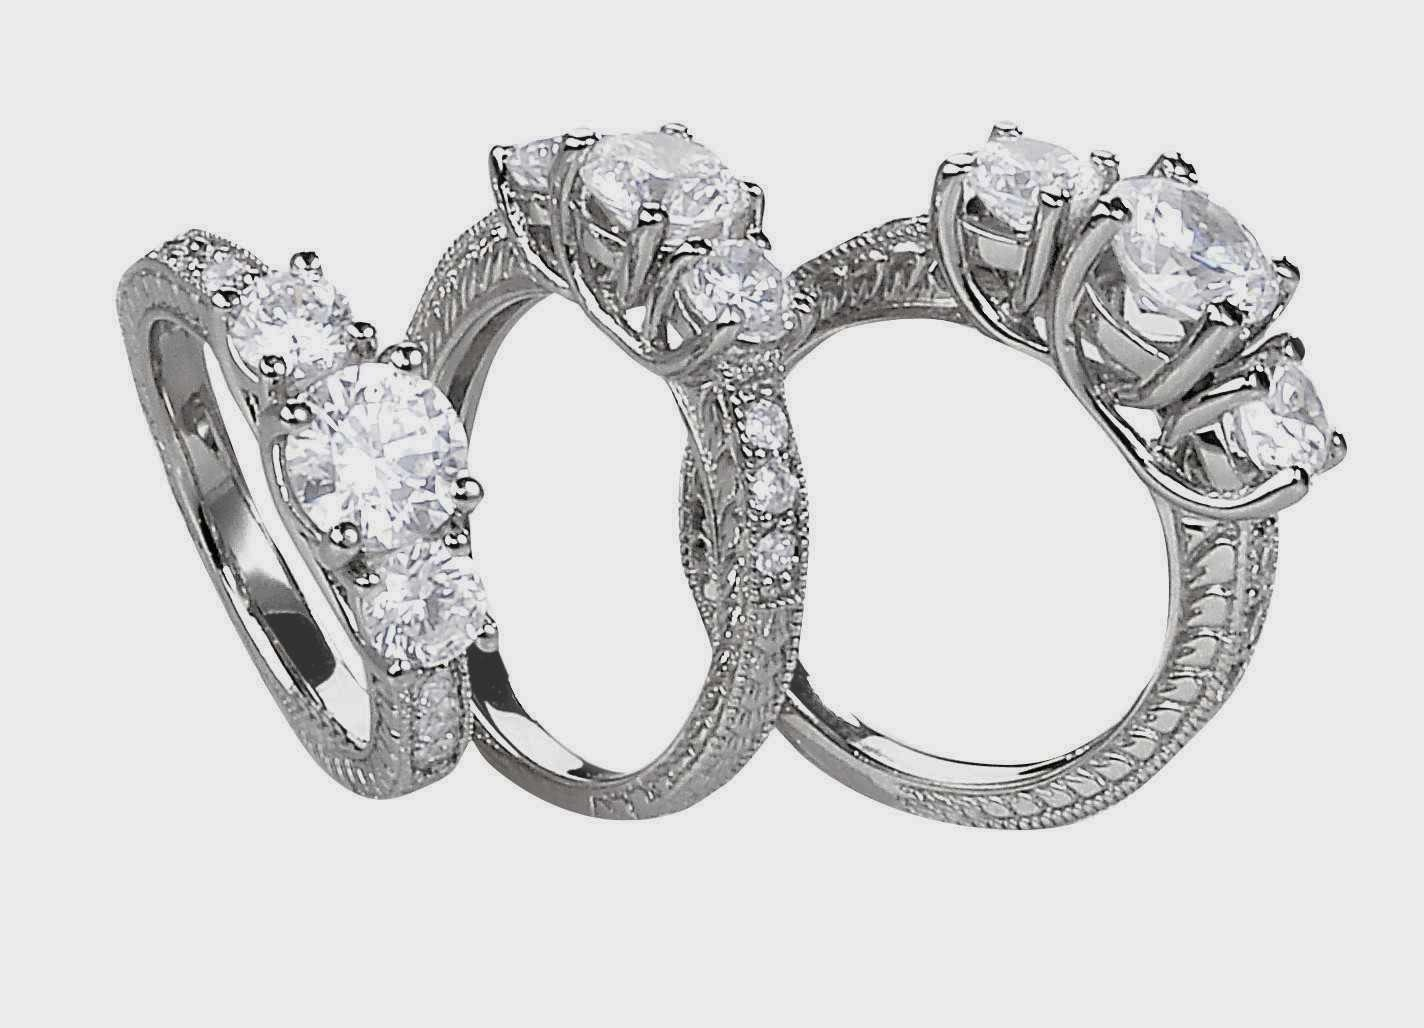 Top 10 Expensive Jewelry Brands Of The World In 2014